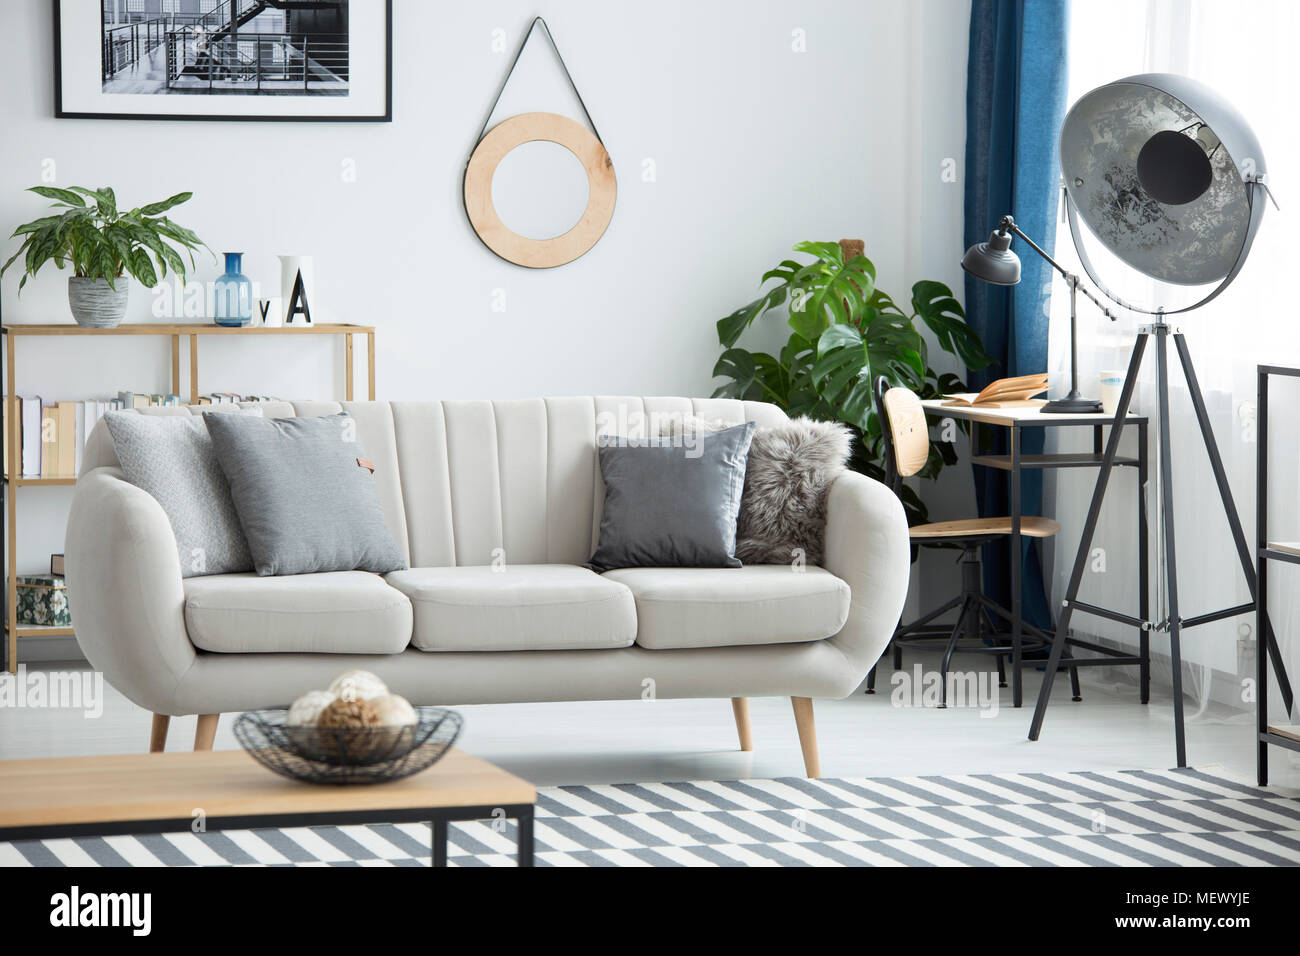 Industrial lamp next to sofa in living room interior with round ...